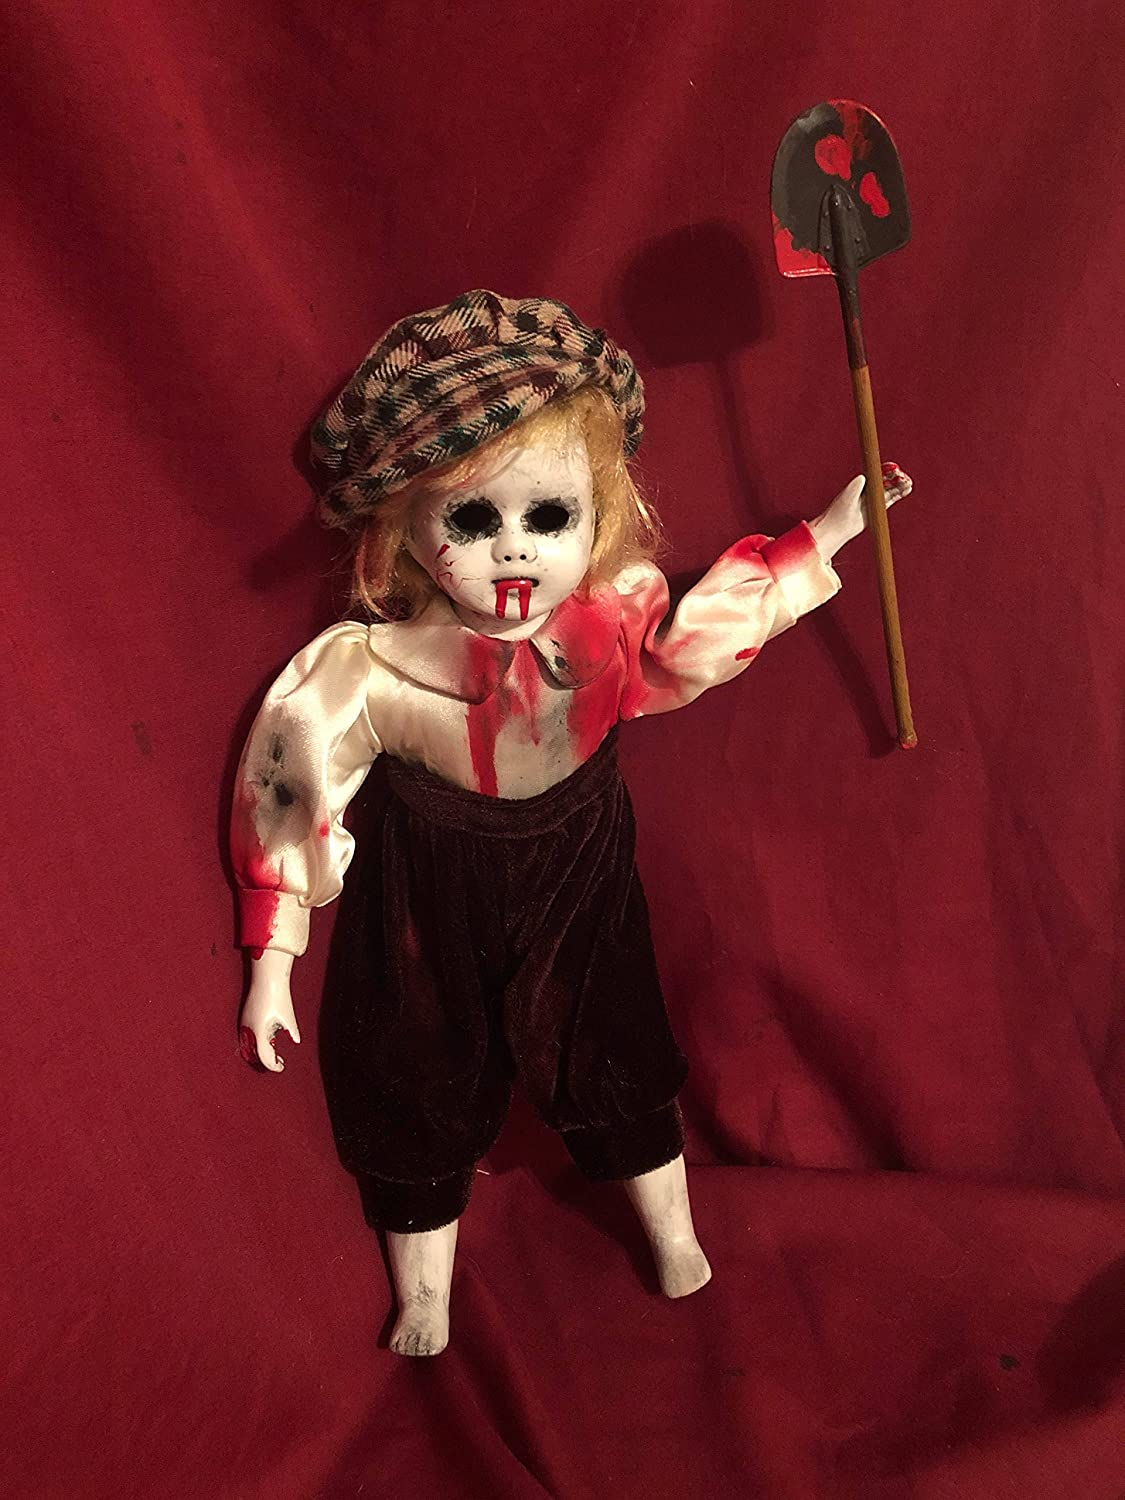 OOAK Small Gravedigger Creepyホラー人形アートby Christie creepydolls   B07BH85PHF